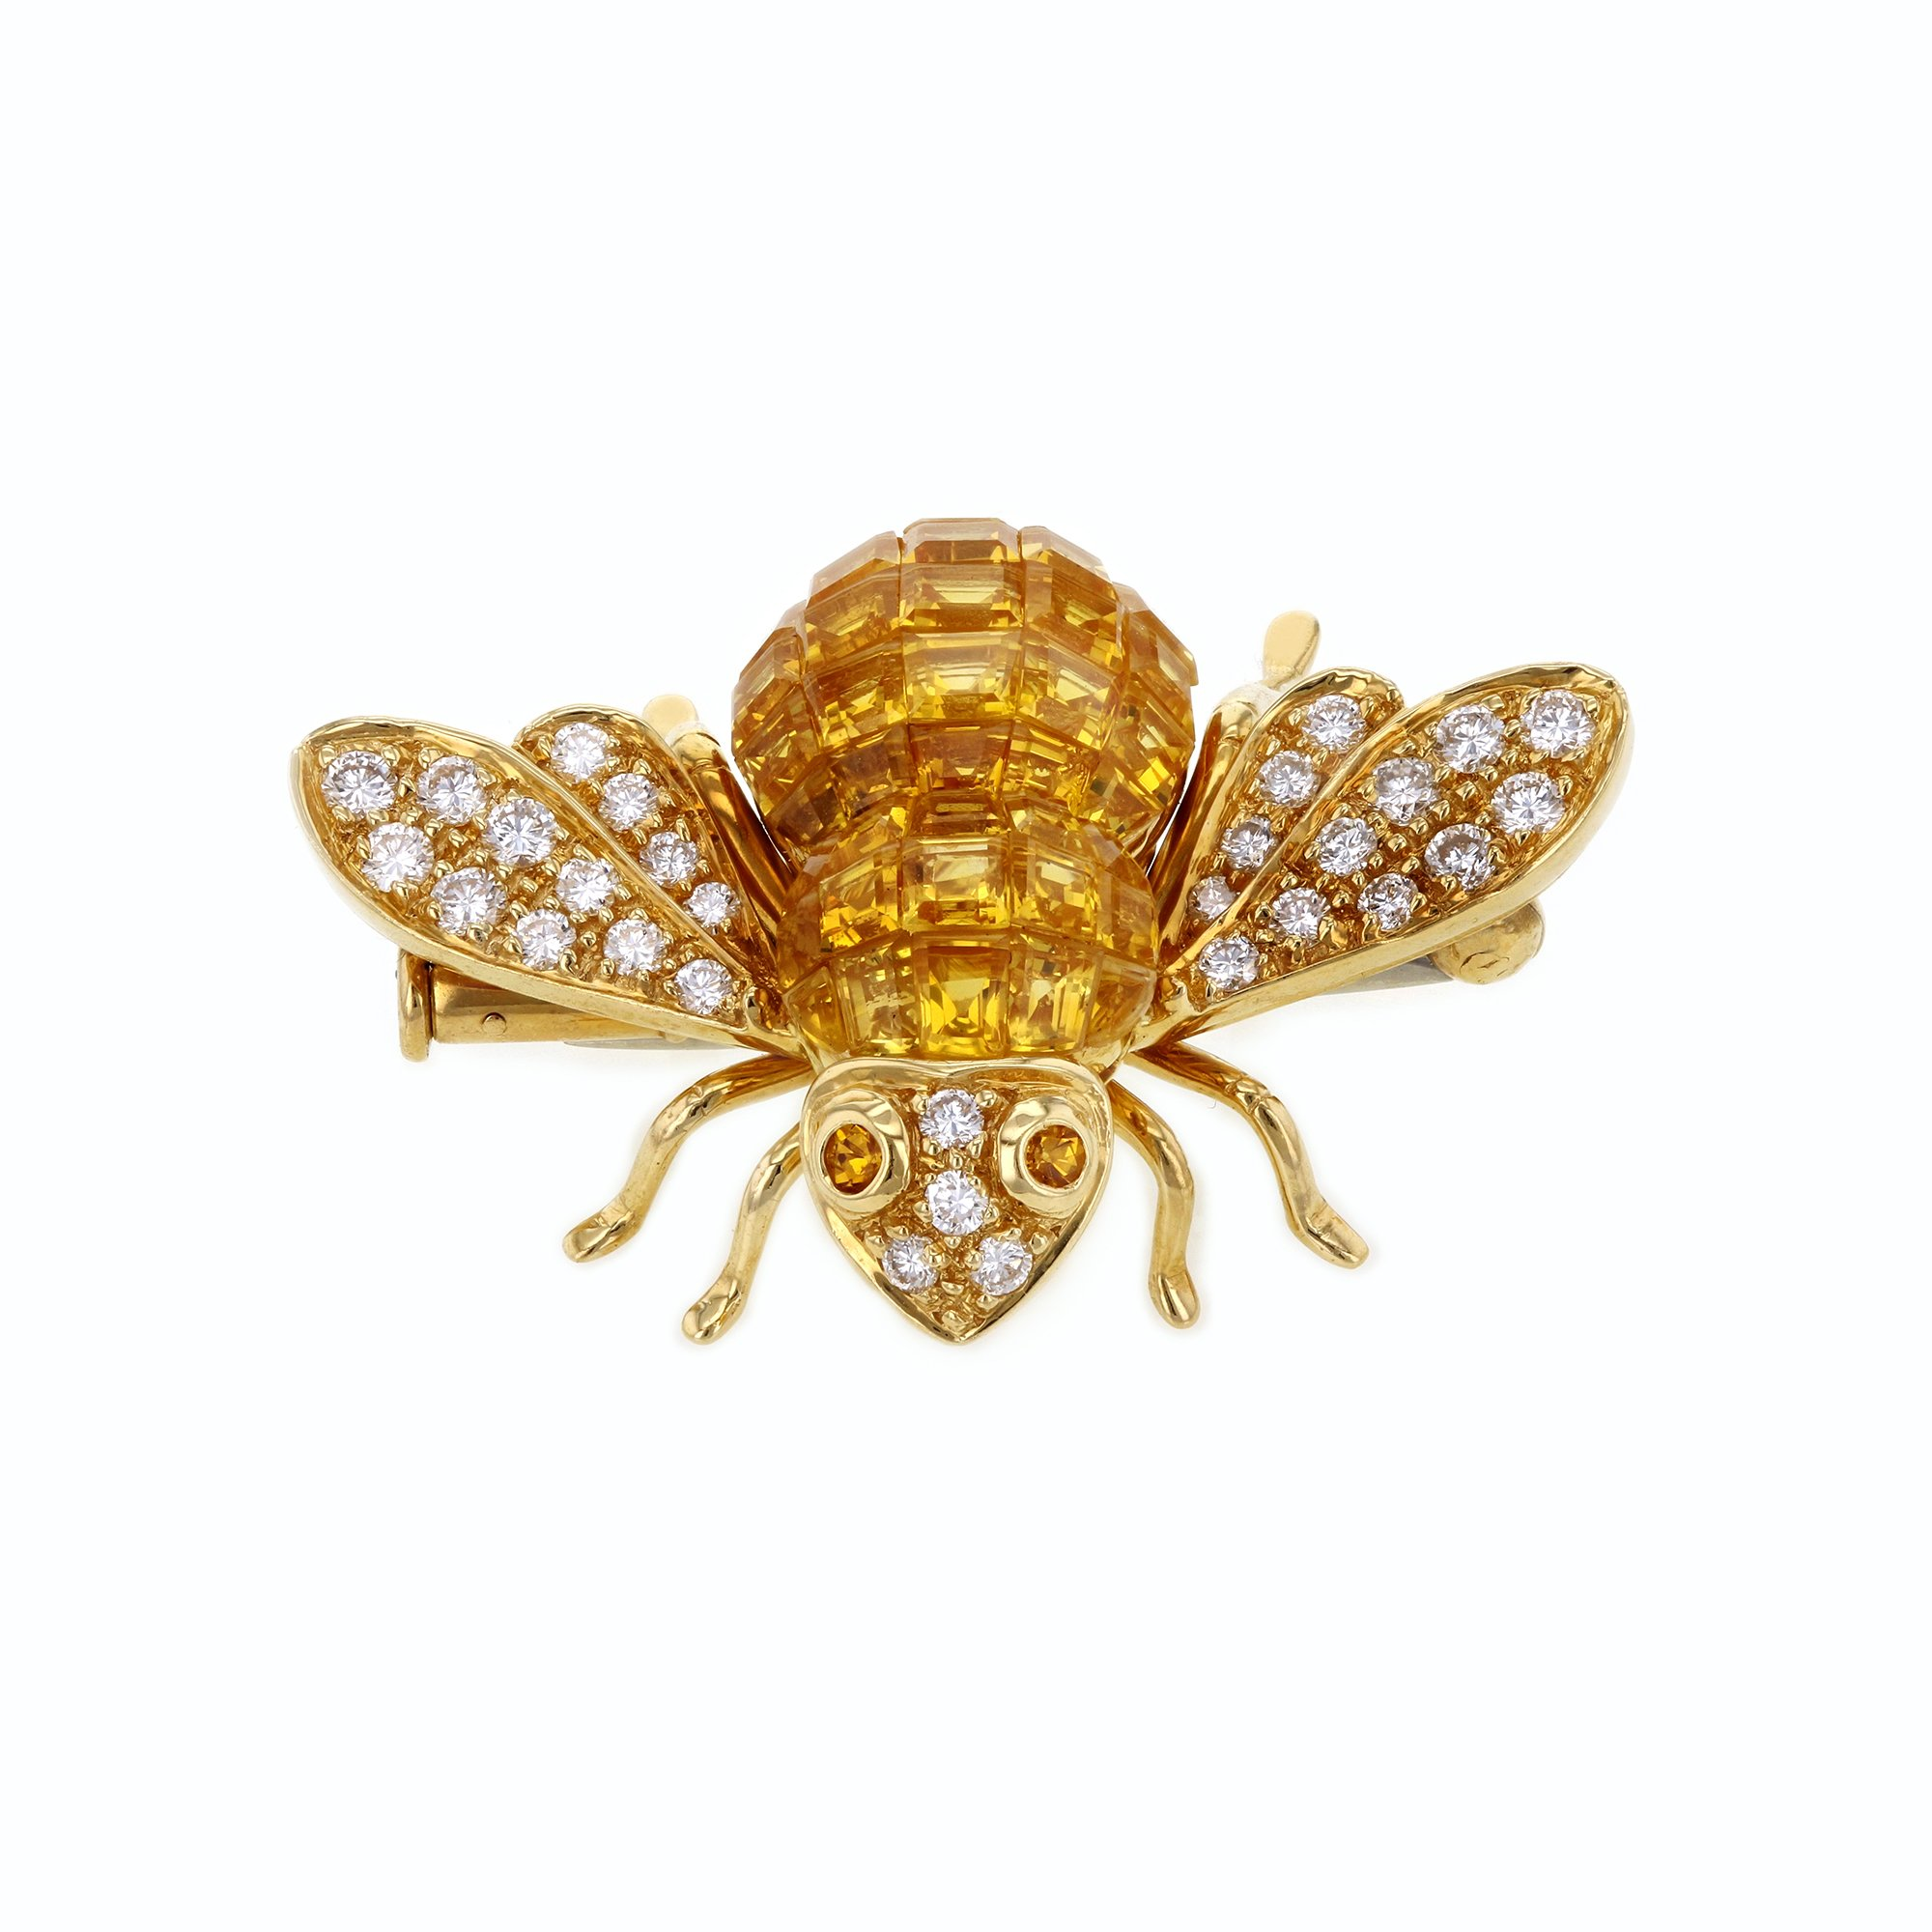 Sabbadini Gioielli Yellow Sapphire and Diamond Bee Brooch 5 Carats TGW 18k Yellow Gold - Italian Fine Jewelry